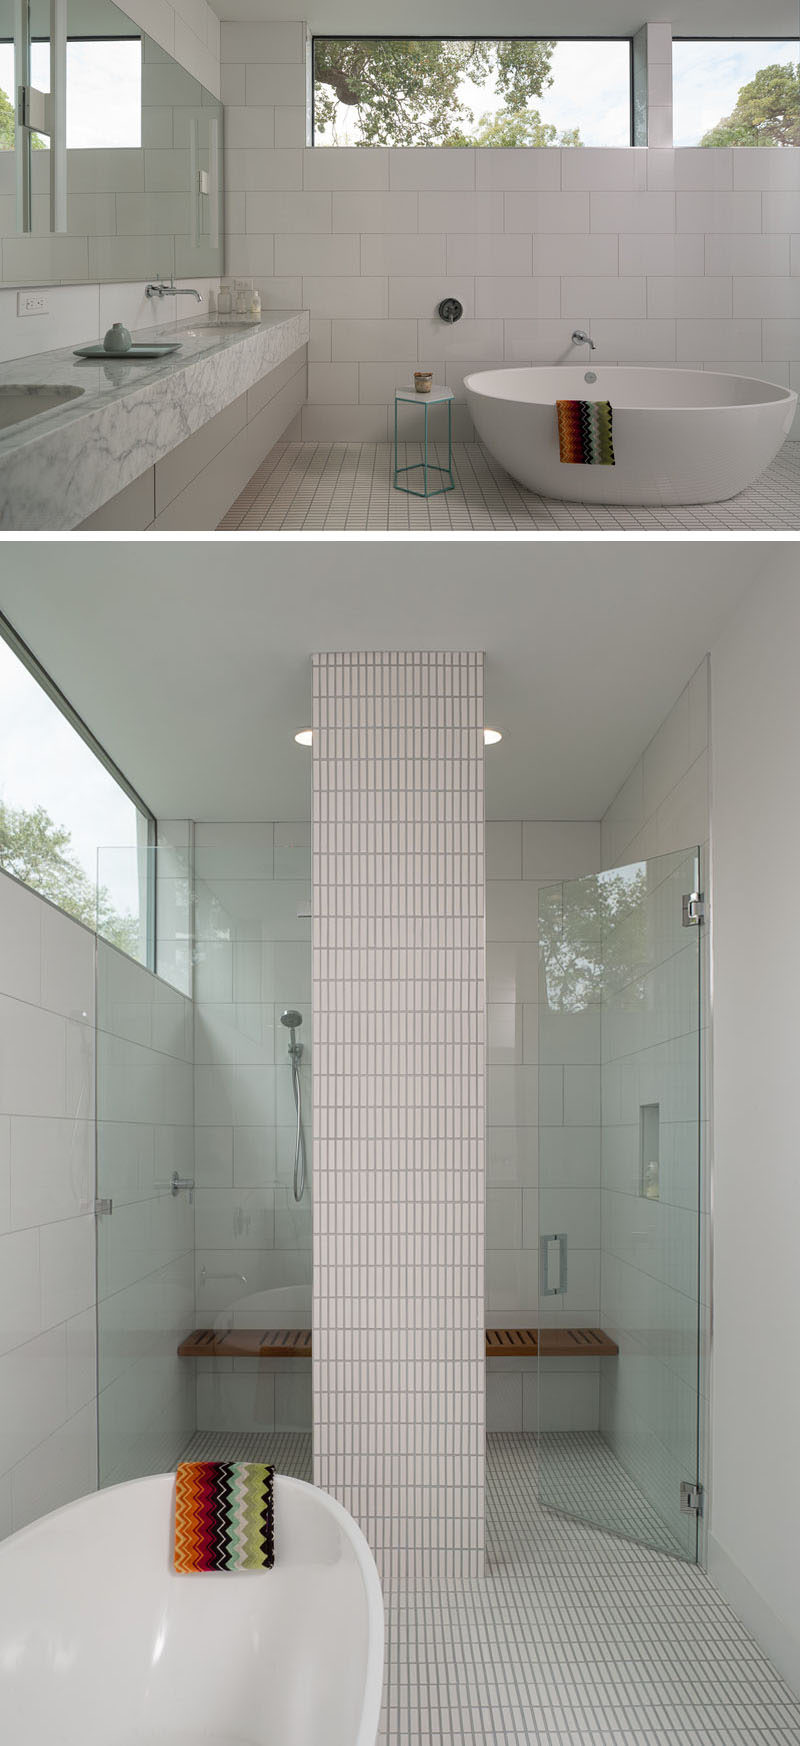 This modern master bathroom has large white tiles that cover the walls, while a standalone bathtub sits between the double-sink vanity and the large walk-in shower with glass surround.